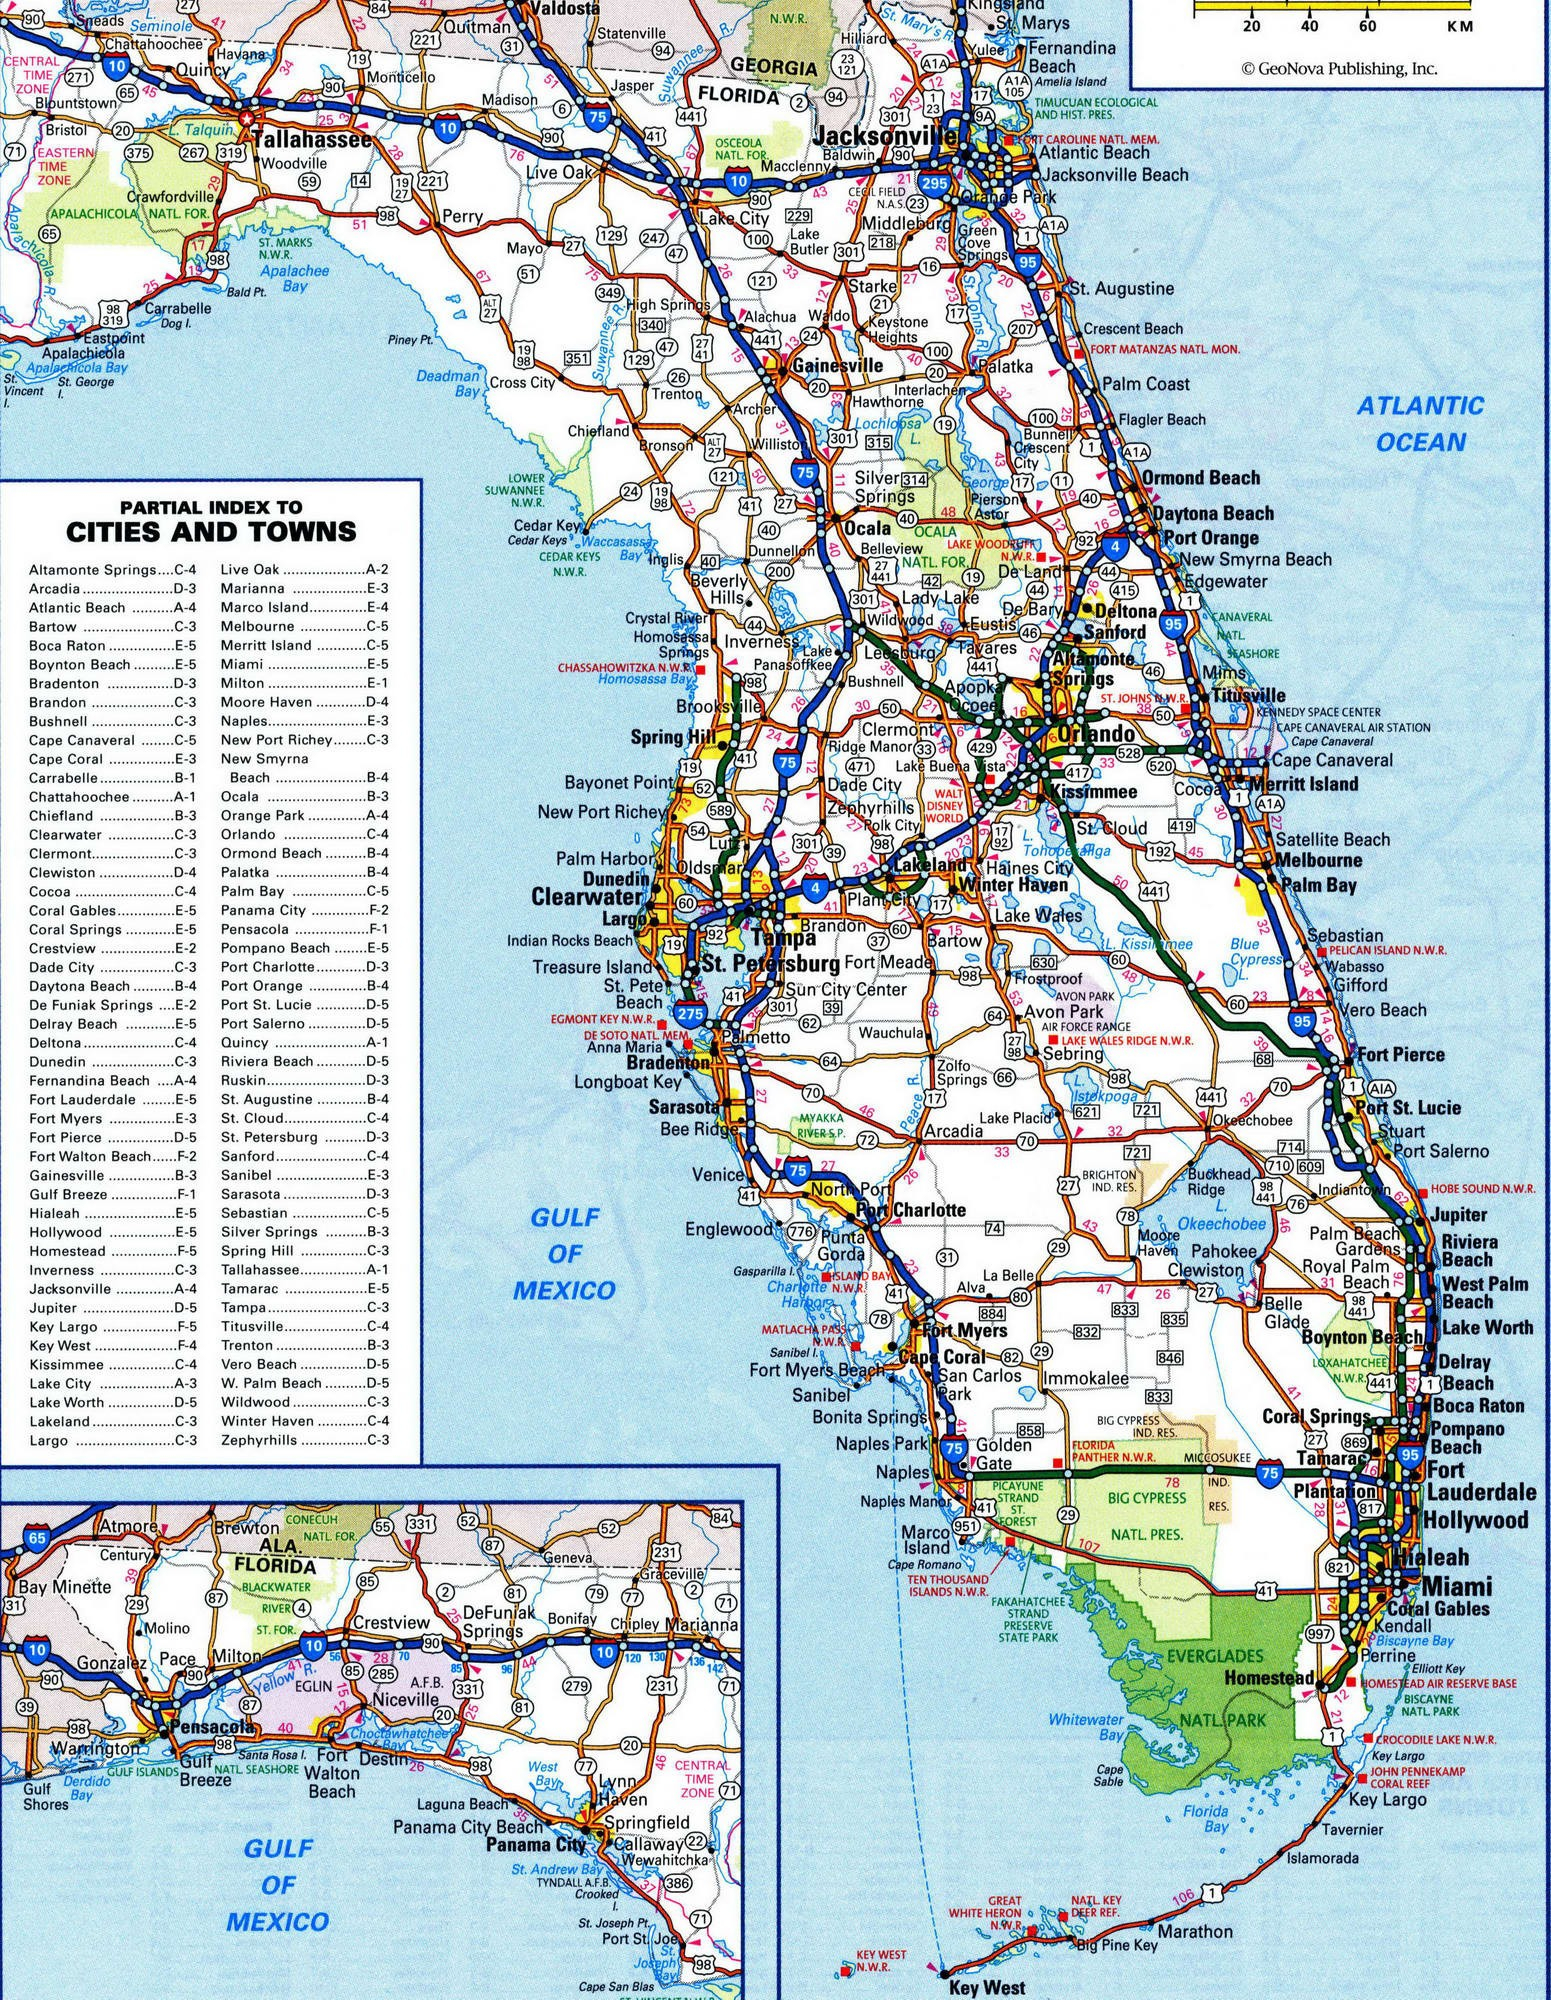 Us West Coast Counties Map Florida Road Map Best Of Us West Coast - Detailed Road Map Of Florida